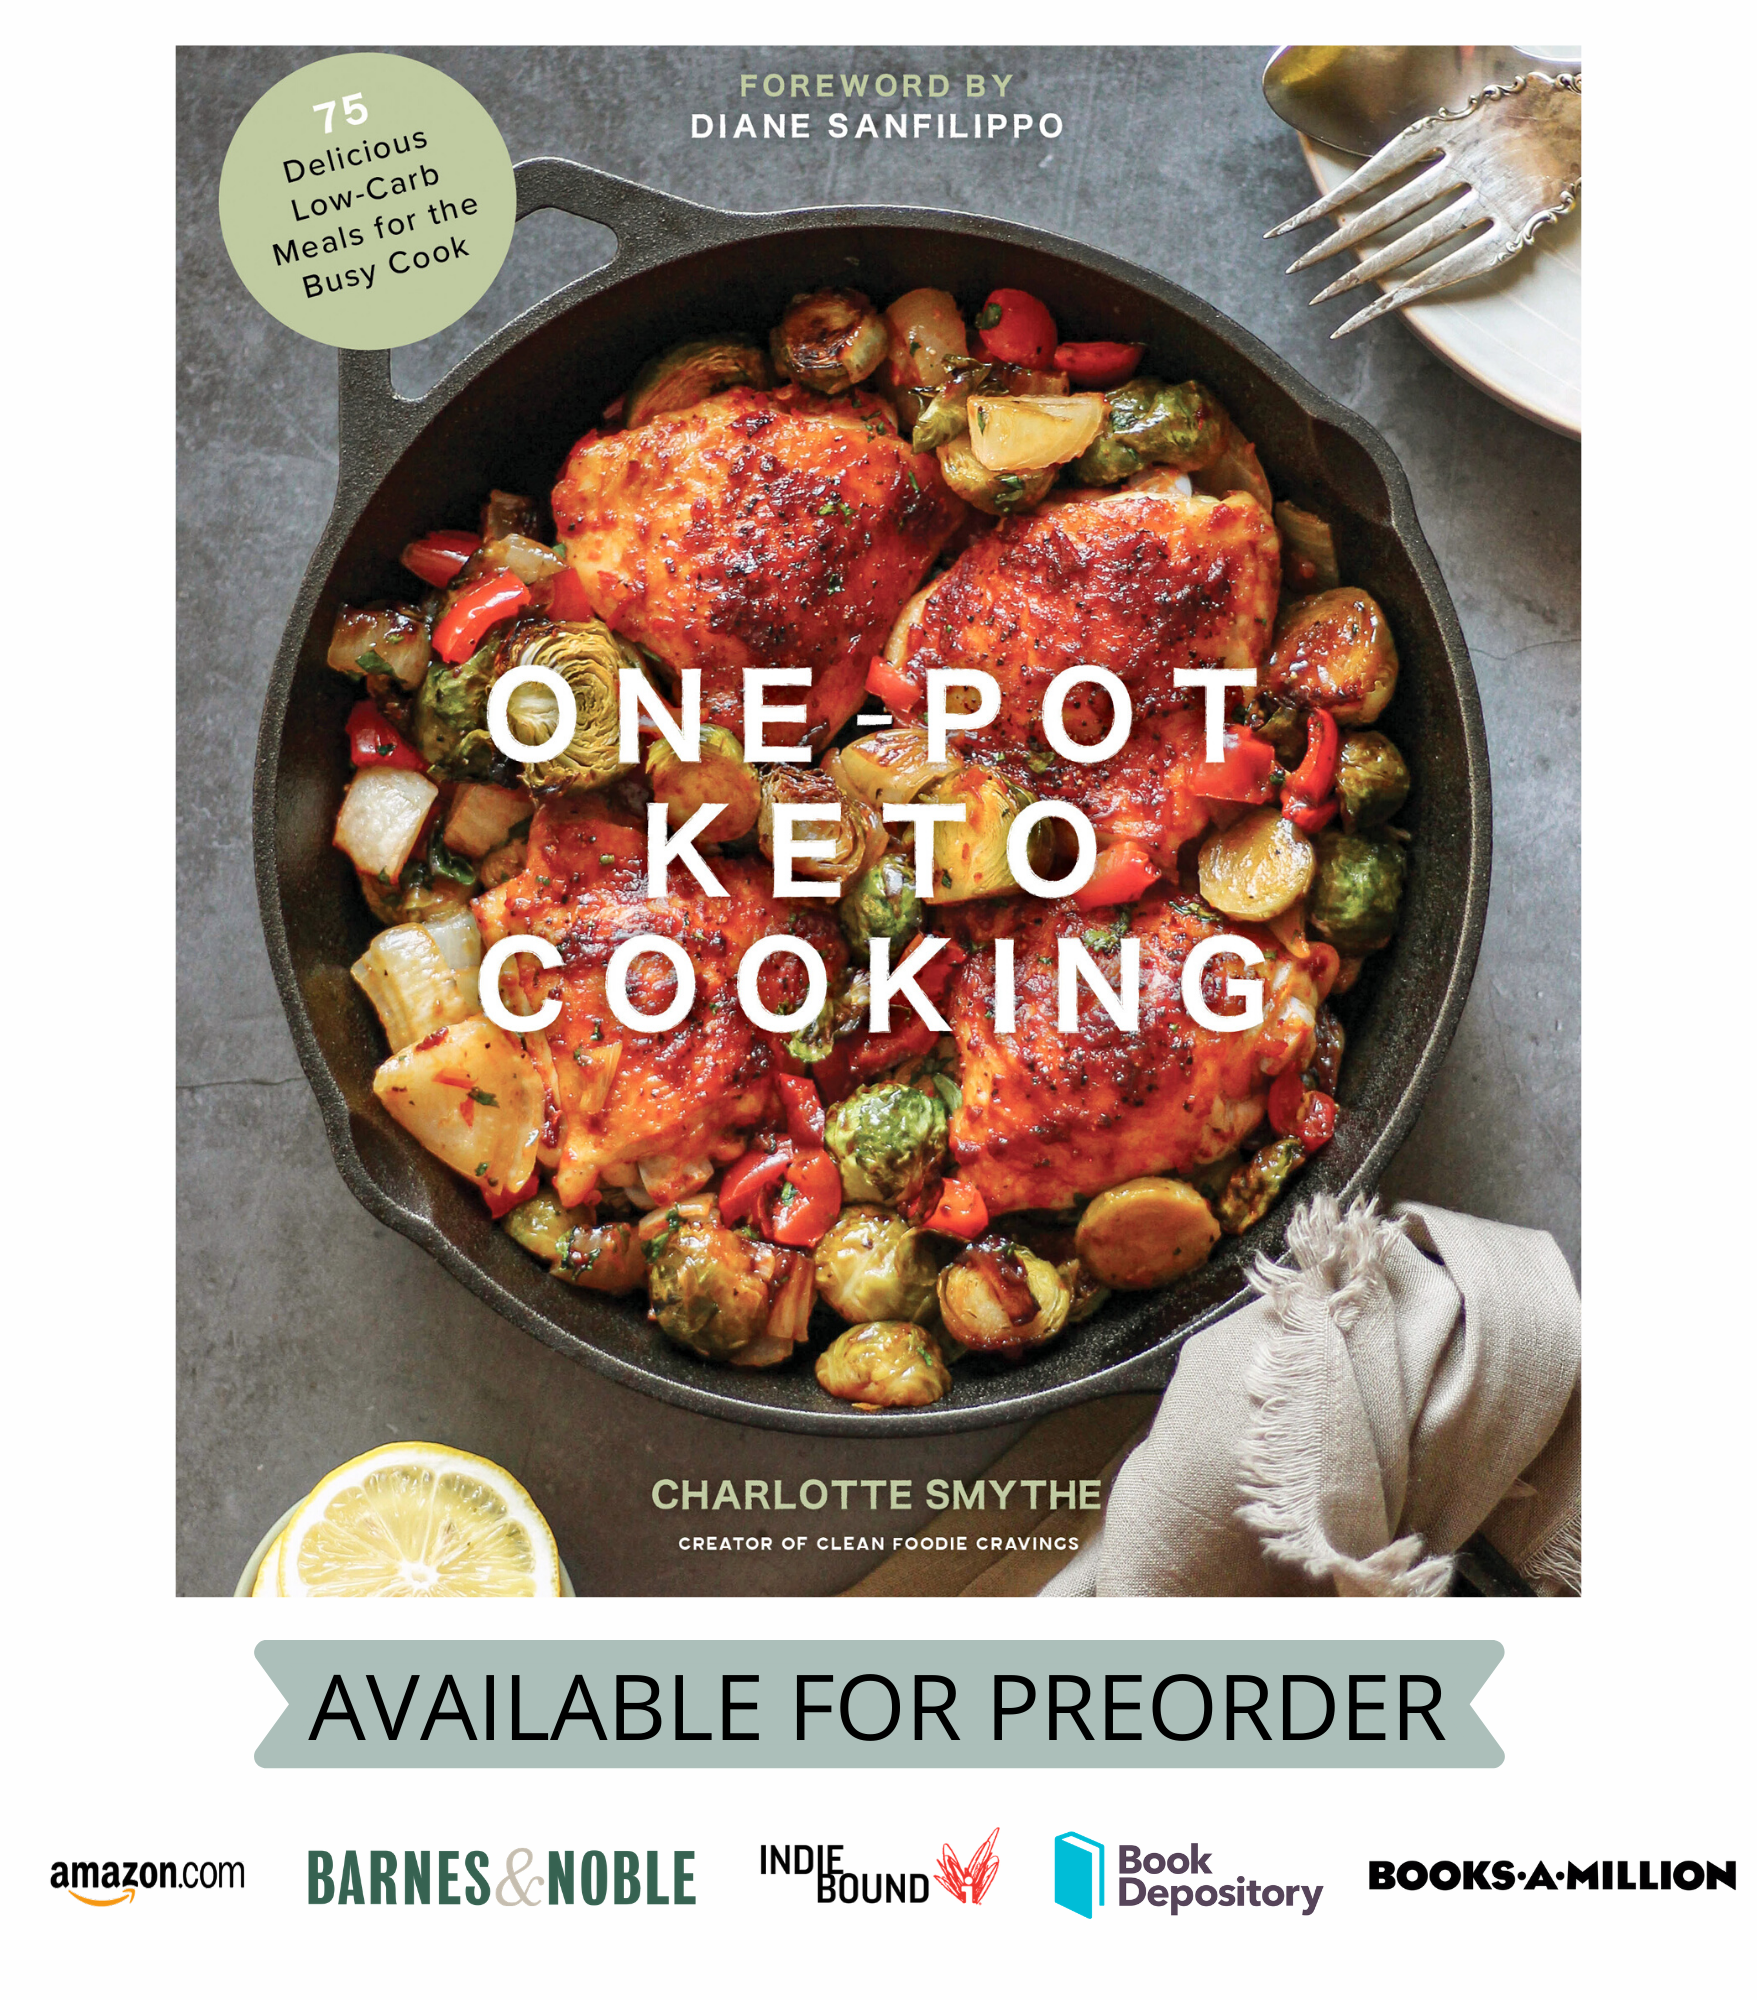 ONE POT KETO COOKING